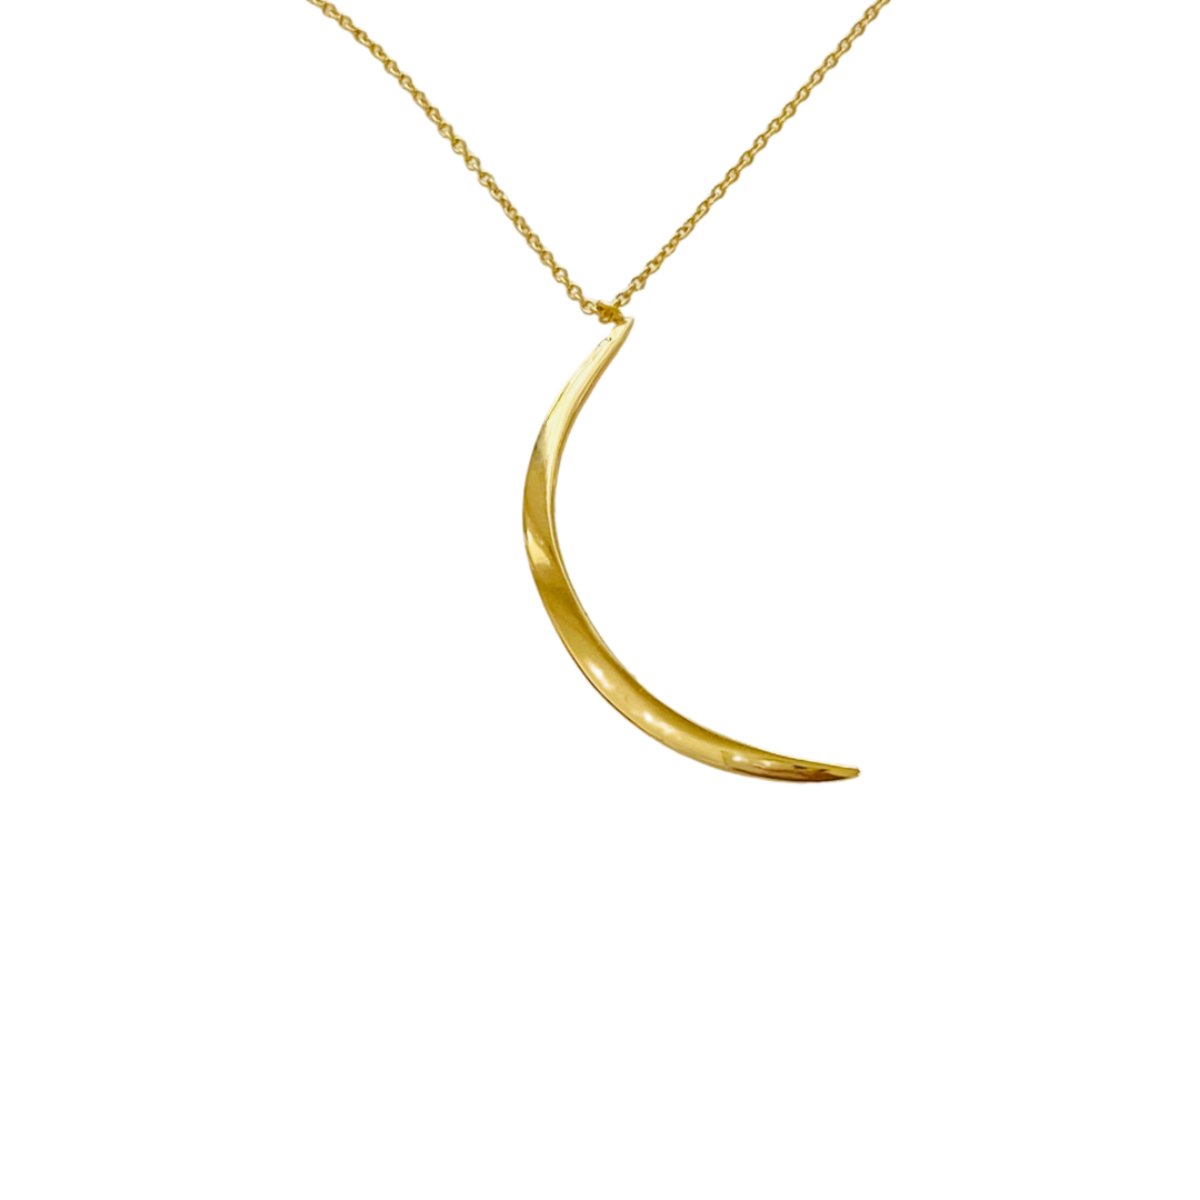 HIGH SHINE CRESCENT MOON NECKLCE